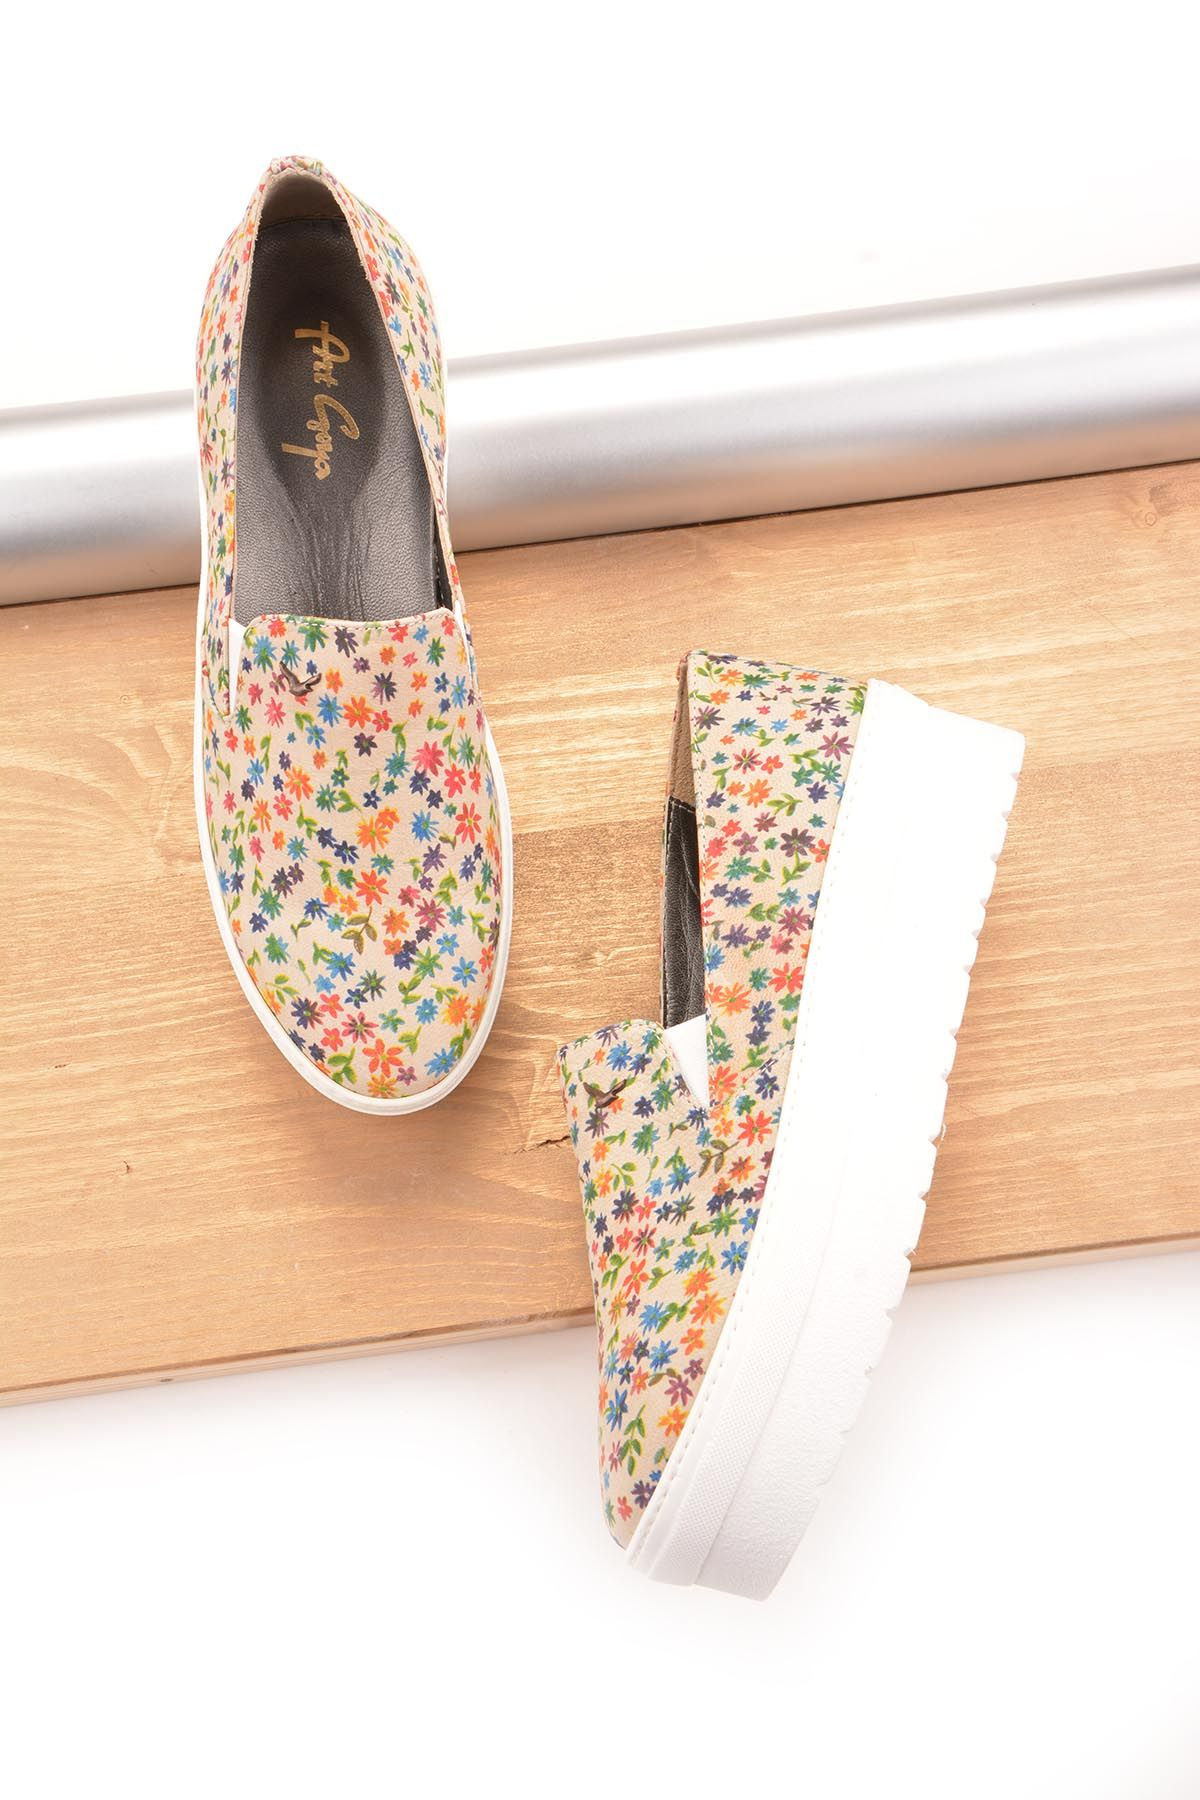 Art Goya High-Soled Women Sneakers From Genuine Leather With Flower Pattern Beige